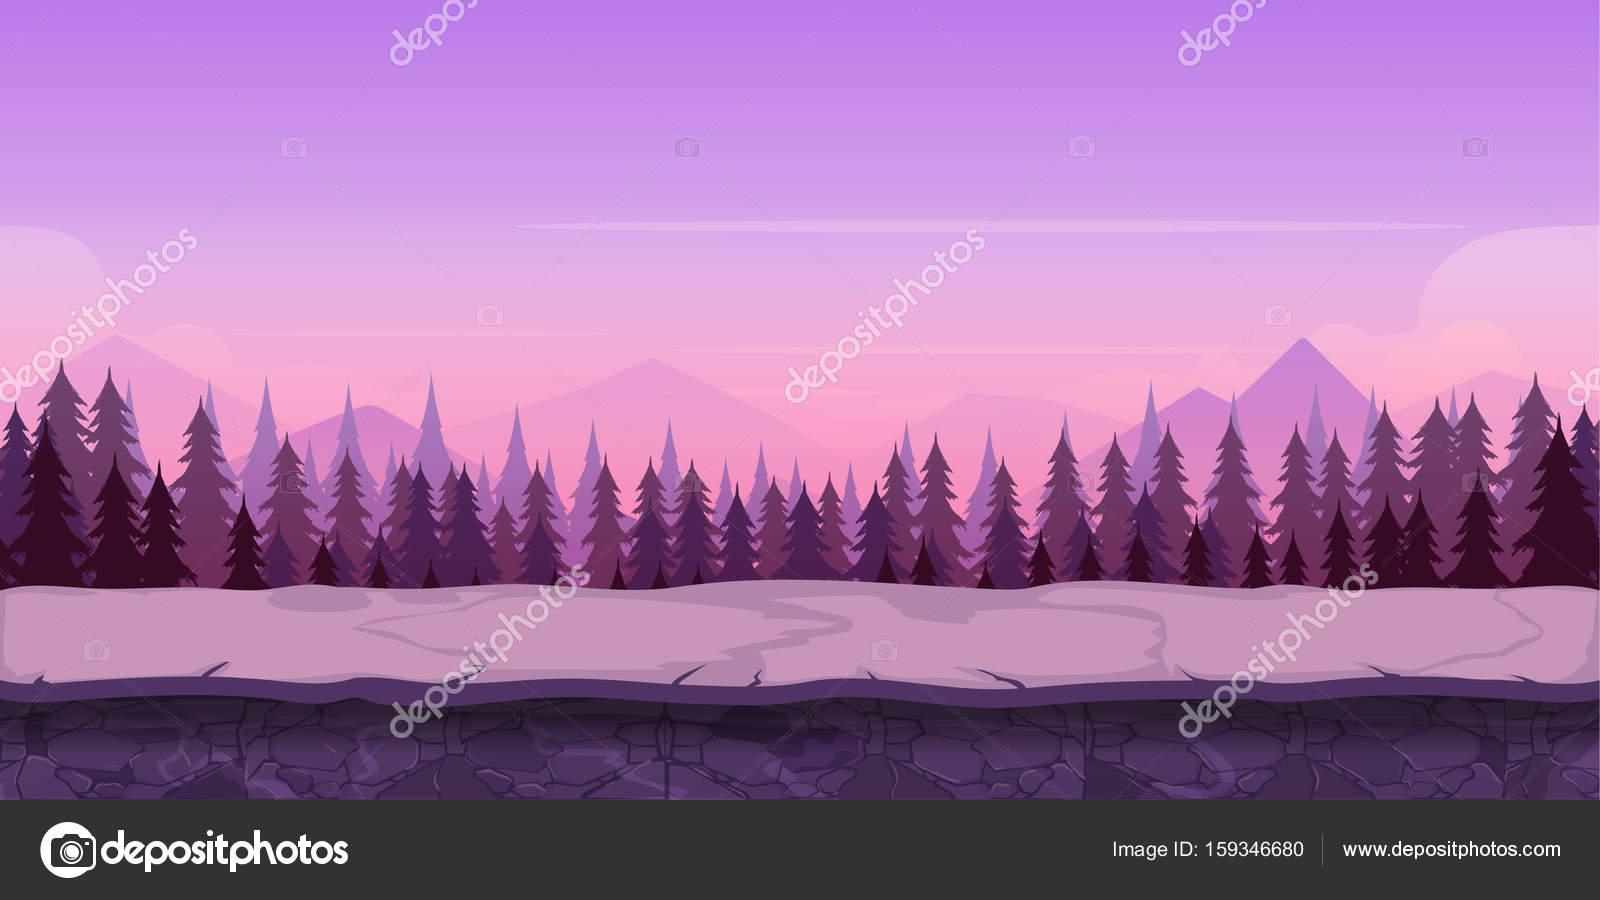 Joyeux Noel Twilight.Background For Your Game Created In Modern Purple Colours